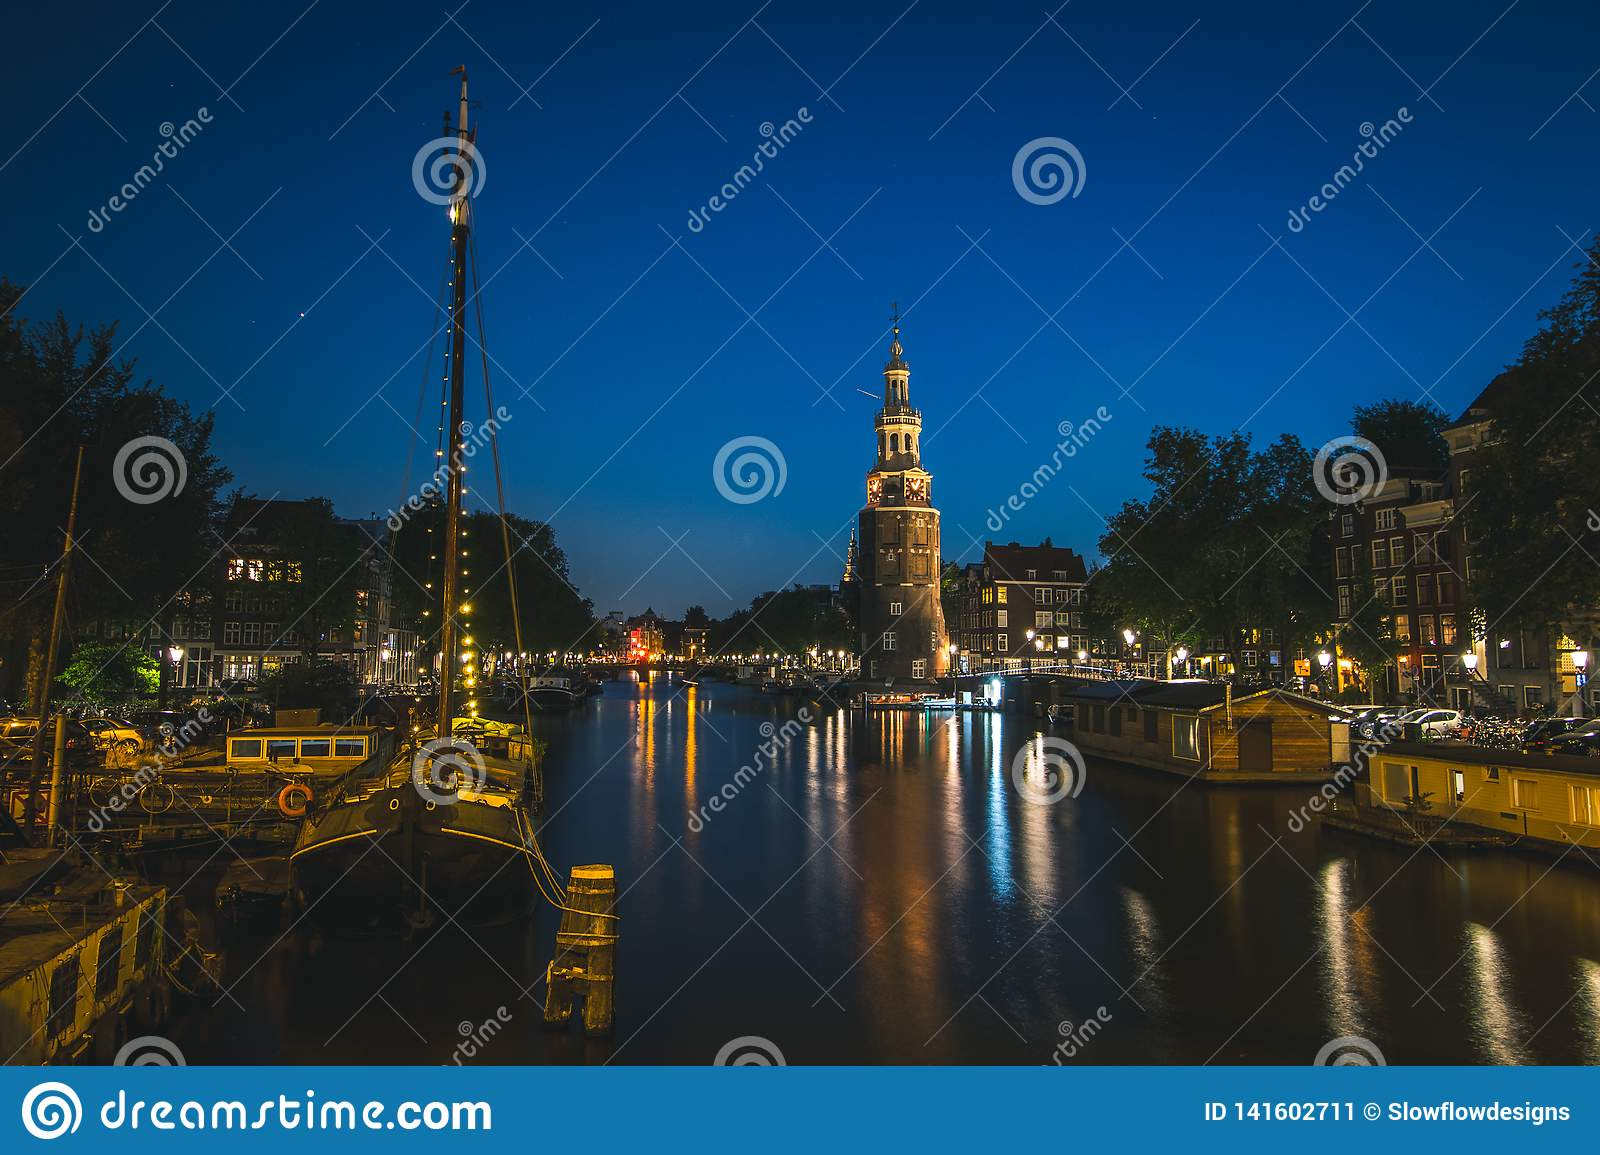 Entrance to canals and clock tower in Amsterdam, Netherlands